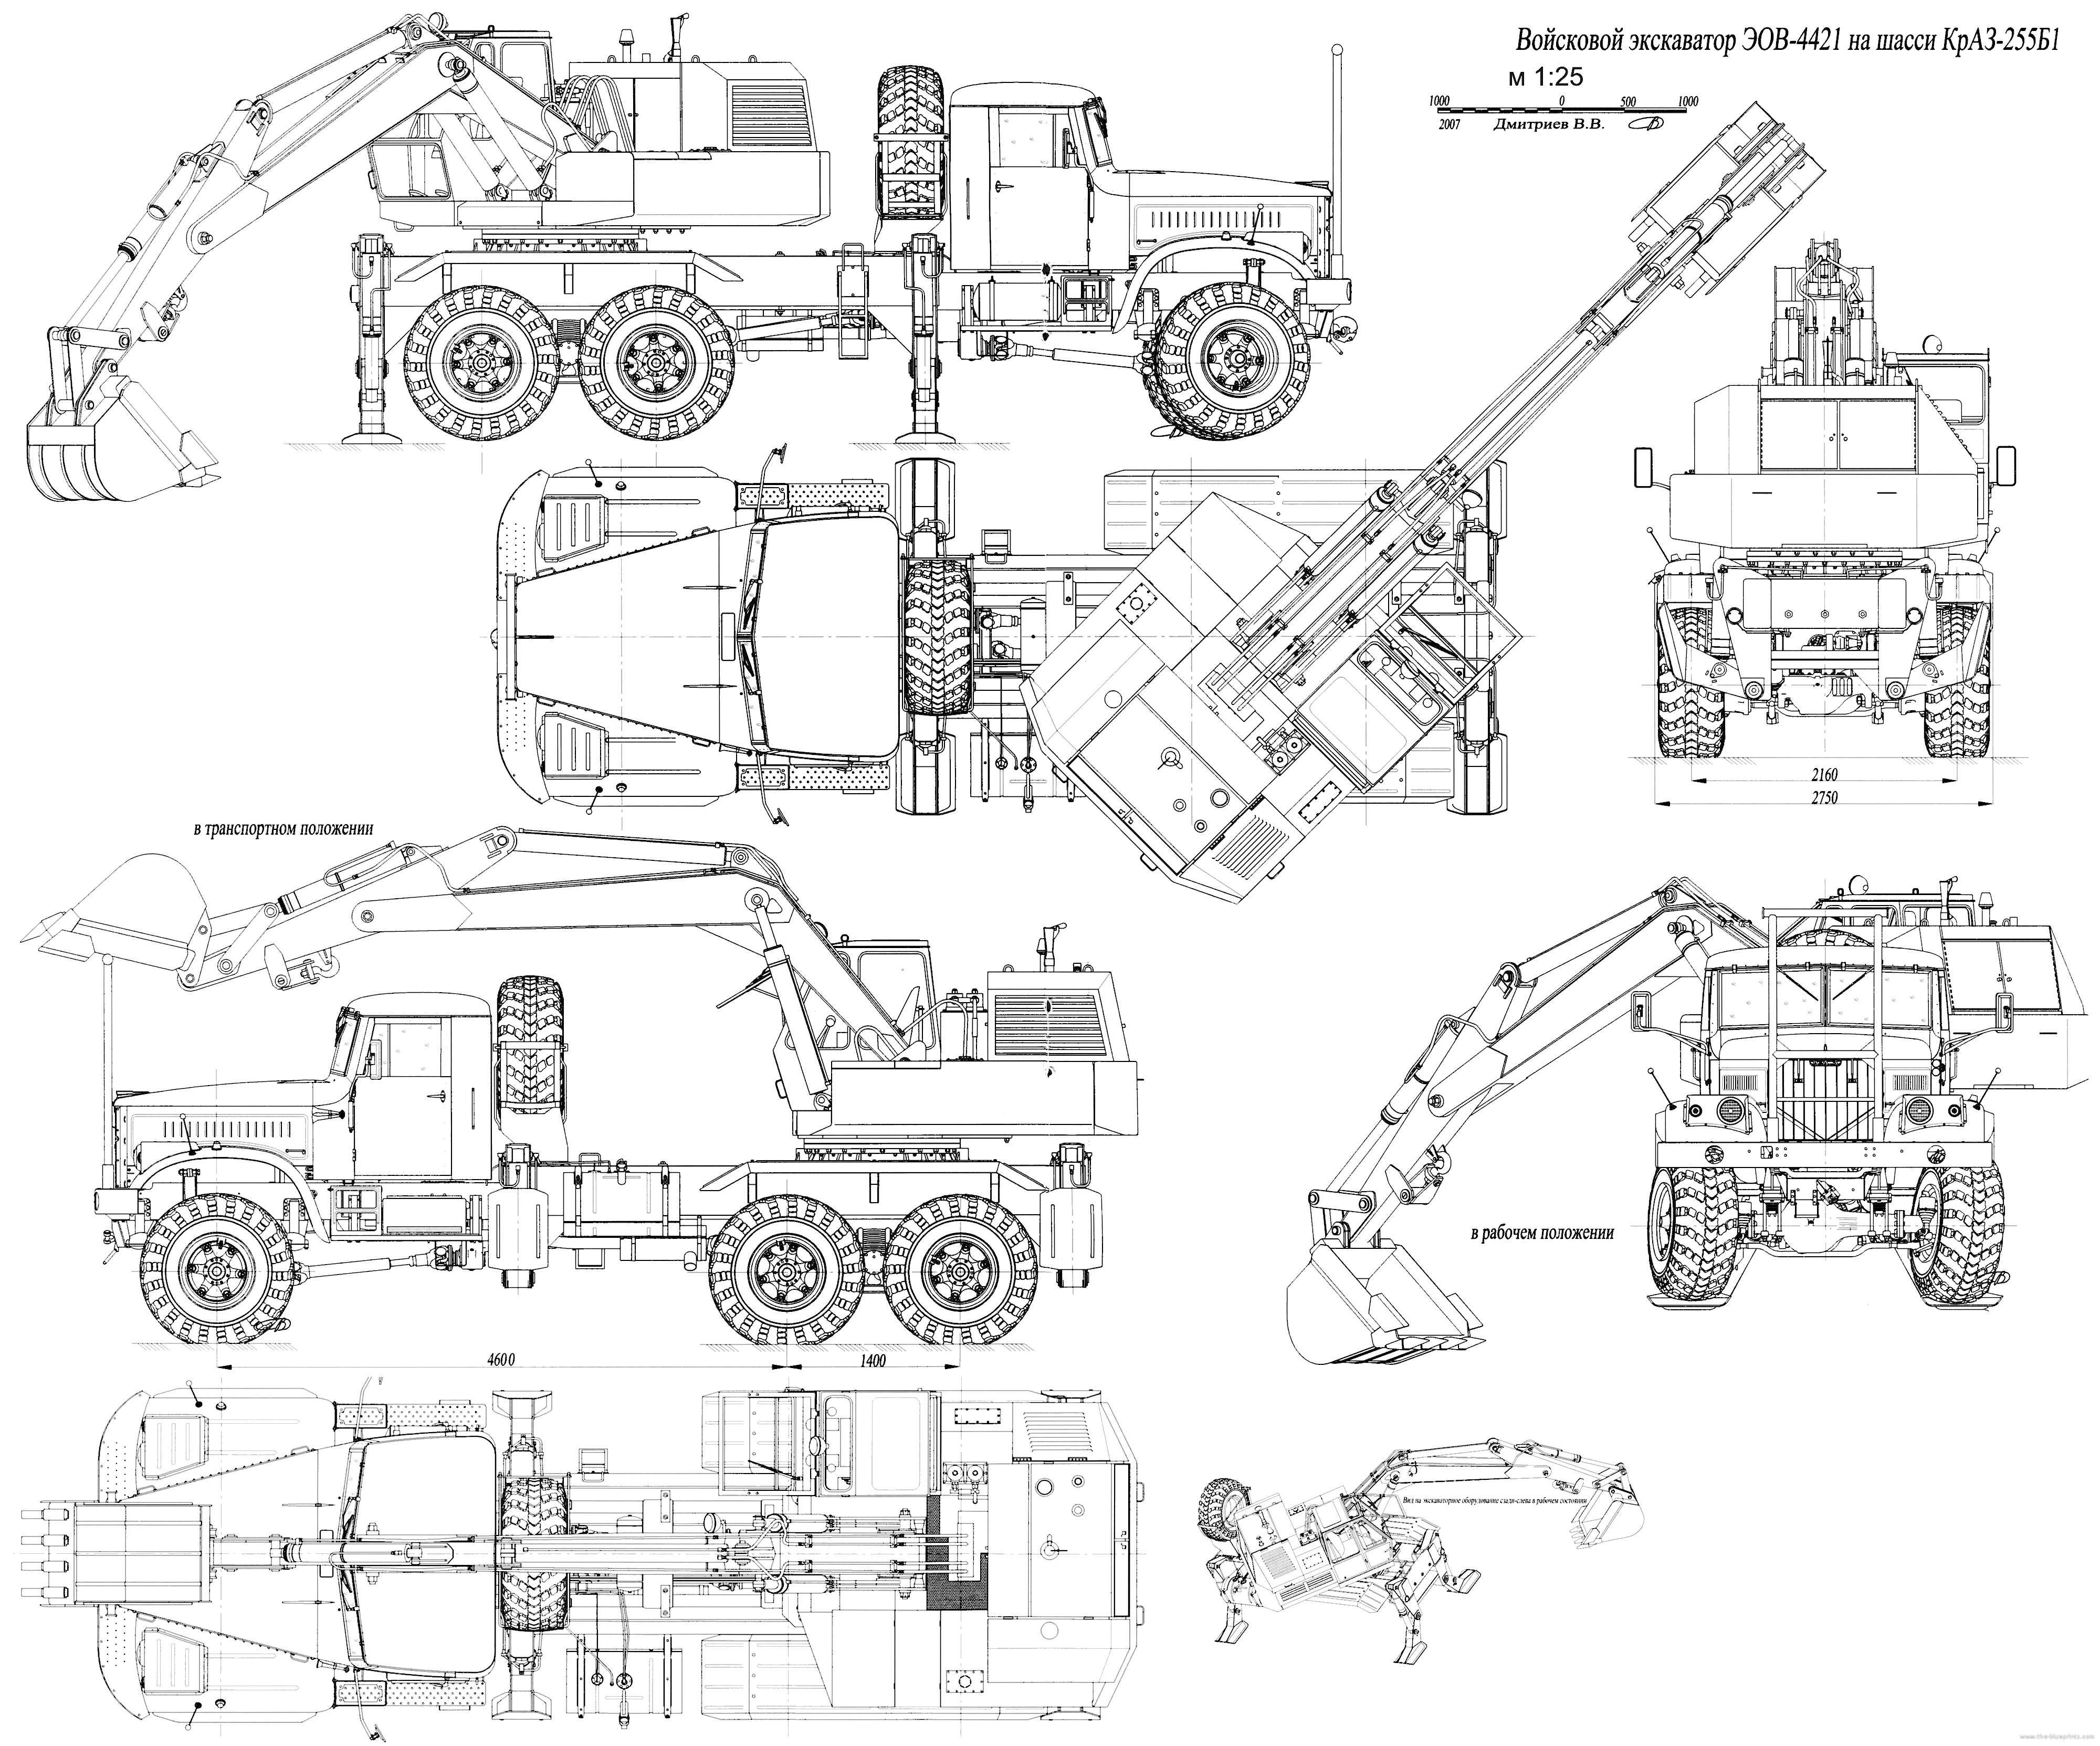 Chevywiring additionally Cool Model Ford Drawings besides 1939 Chevrolet Truck Parts as well 416231190544015032 also Index. on 1930 ford model a pickup with 1932 s